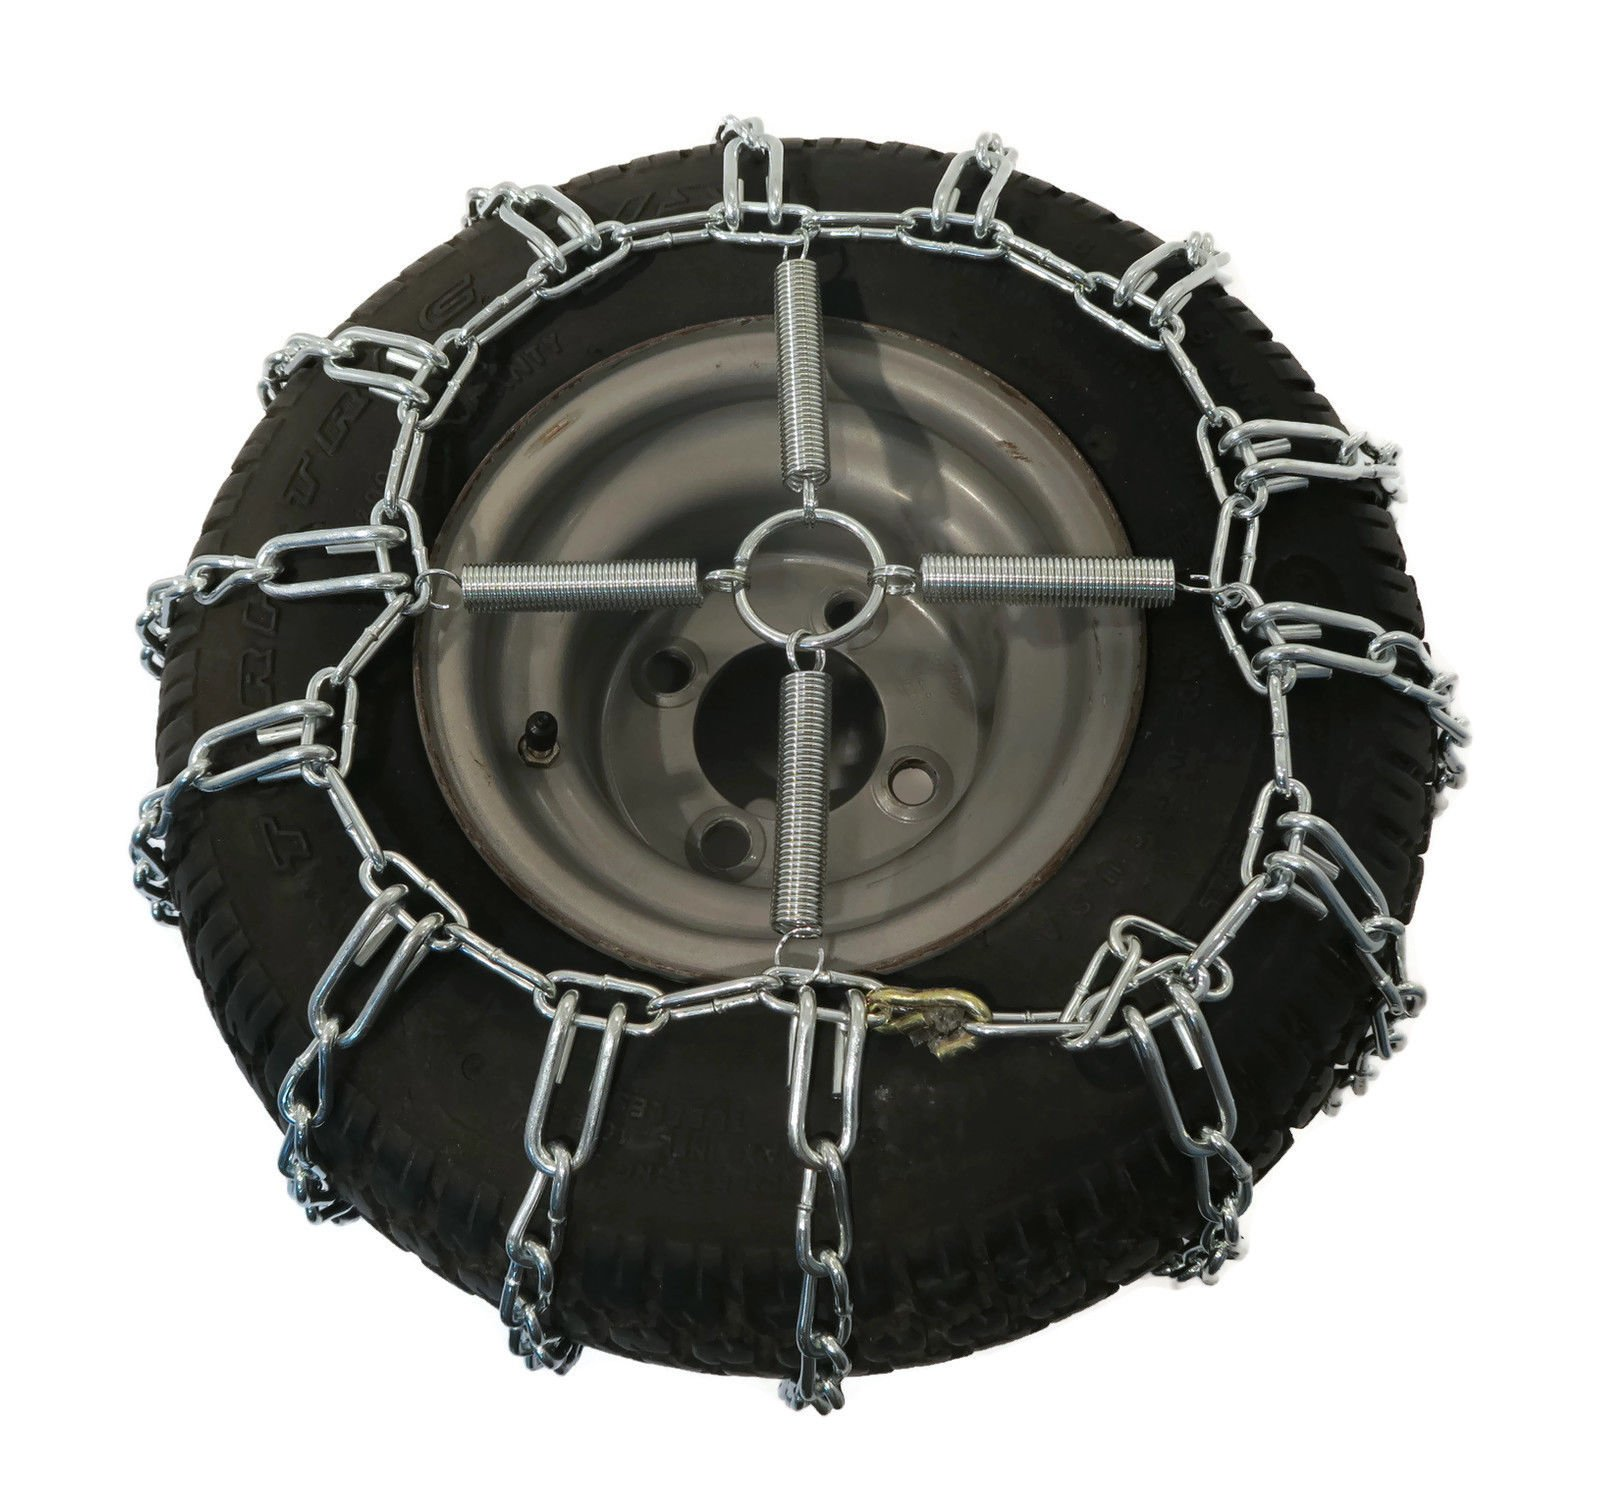 The ROP Shop 2 Link TIRE Chains & TENSIONERS 23x10.5x12 for MTD Cub Cadet Lawn Mower Tractor by The ROP Shop (Image #5)